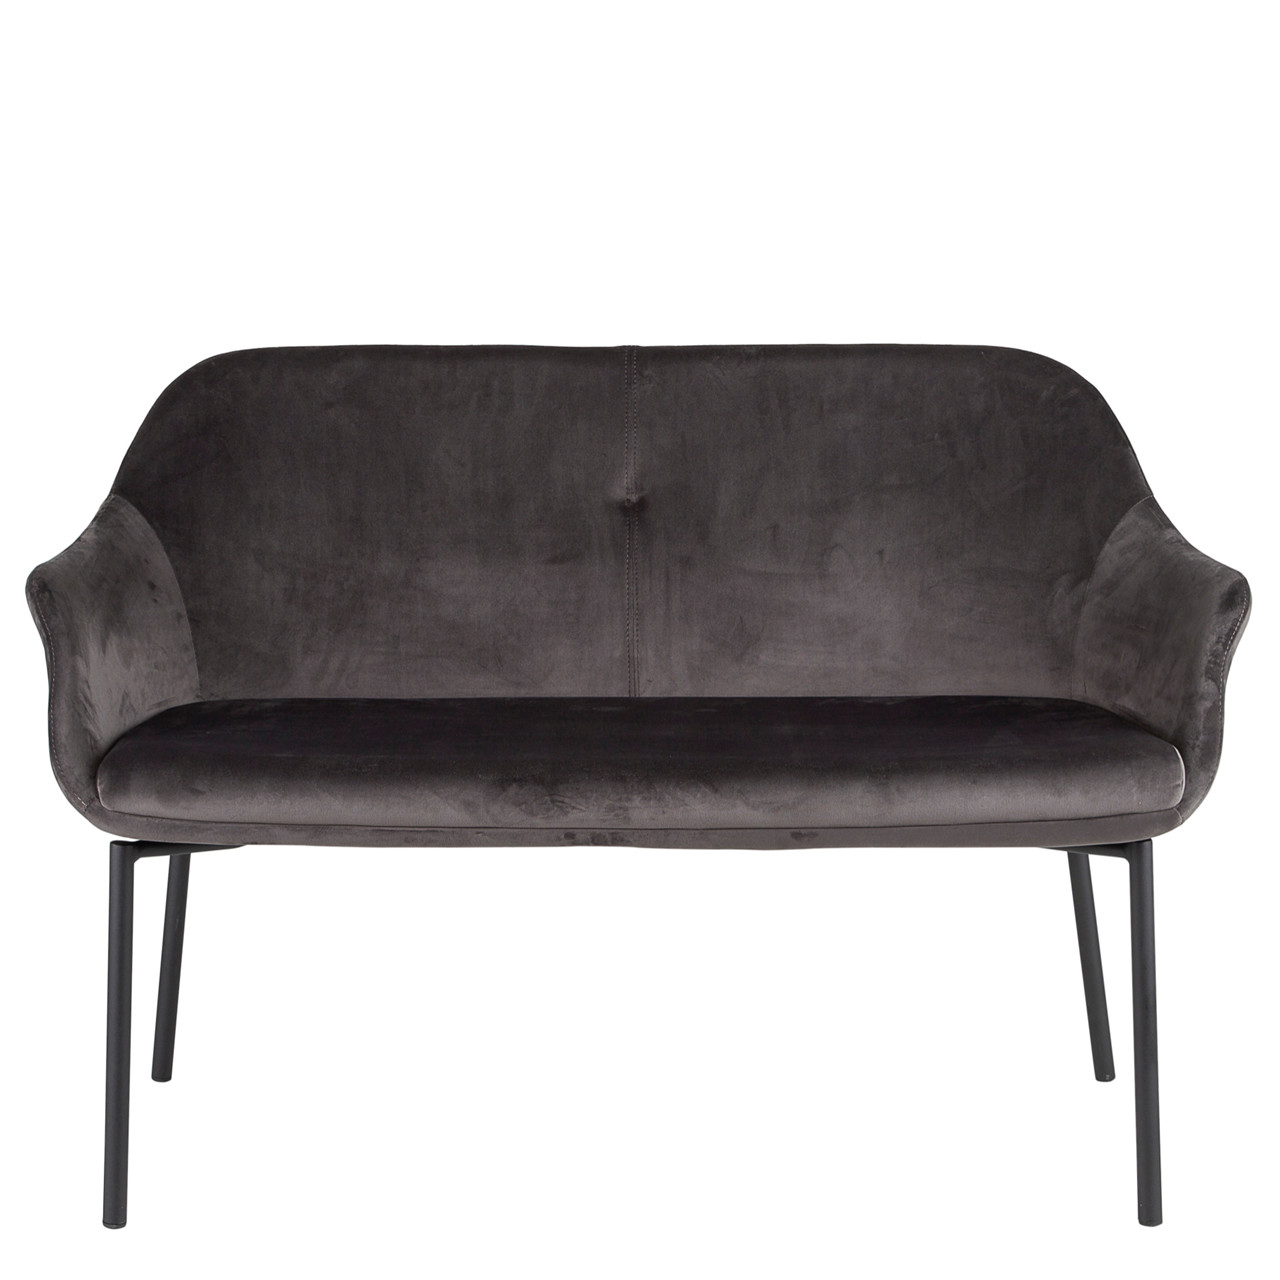 sofa velour 2 pers NEW AGE 2 pers. sofa grå velour sofa velour 2 pers